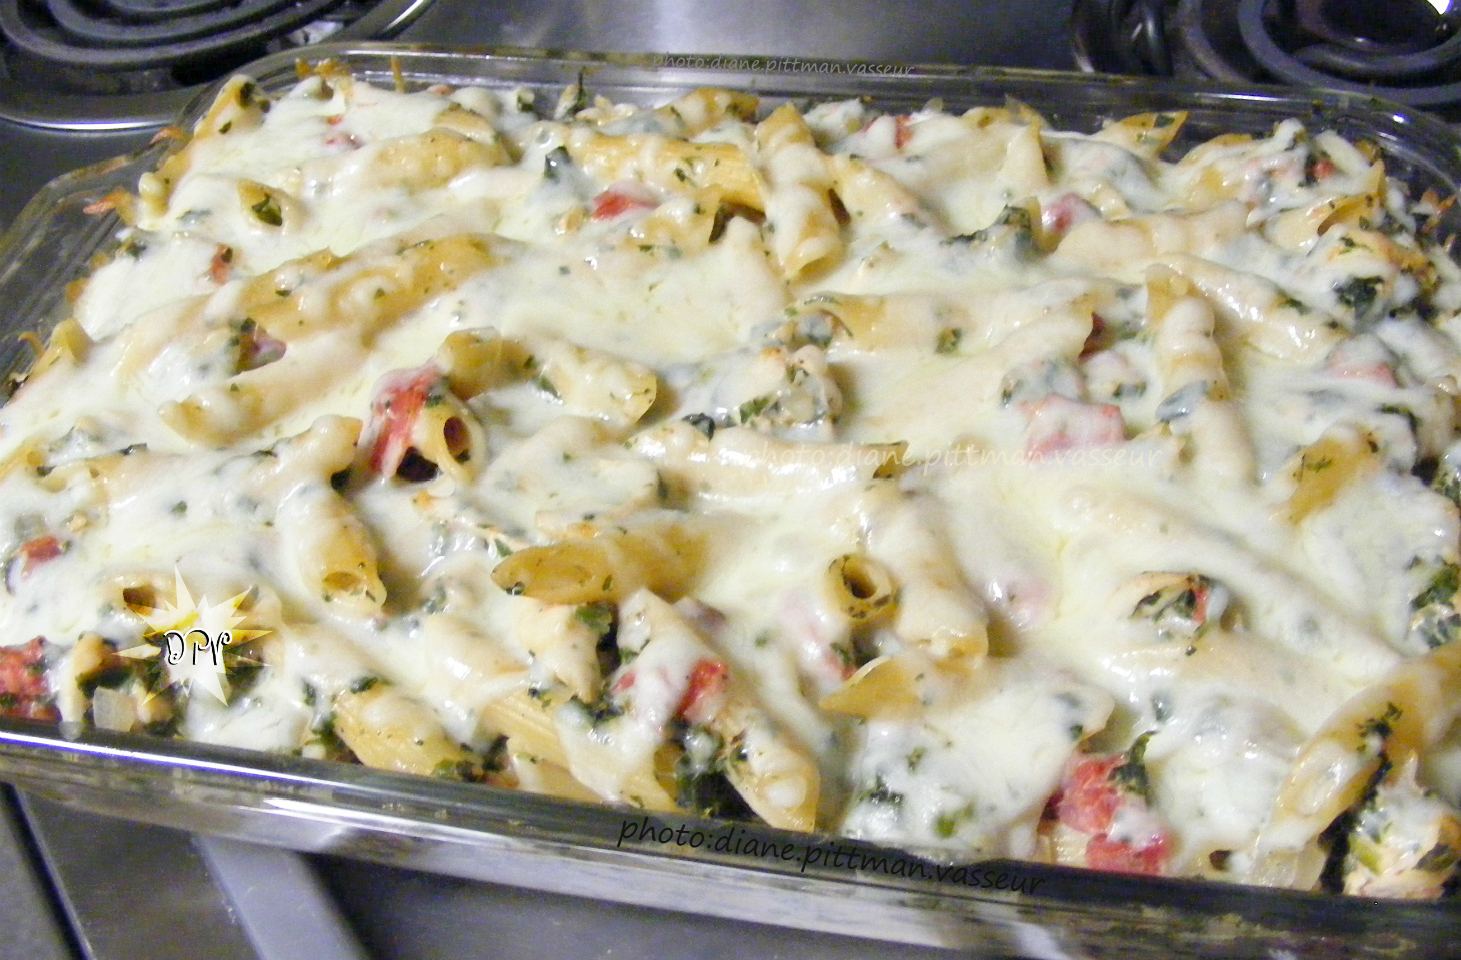 Chicken, Spinach, and Cheese Pasta Bake